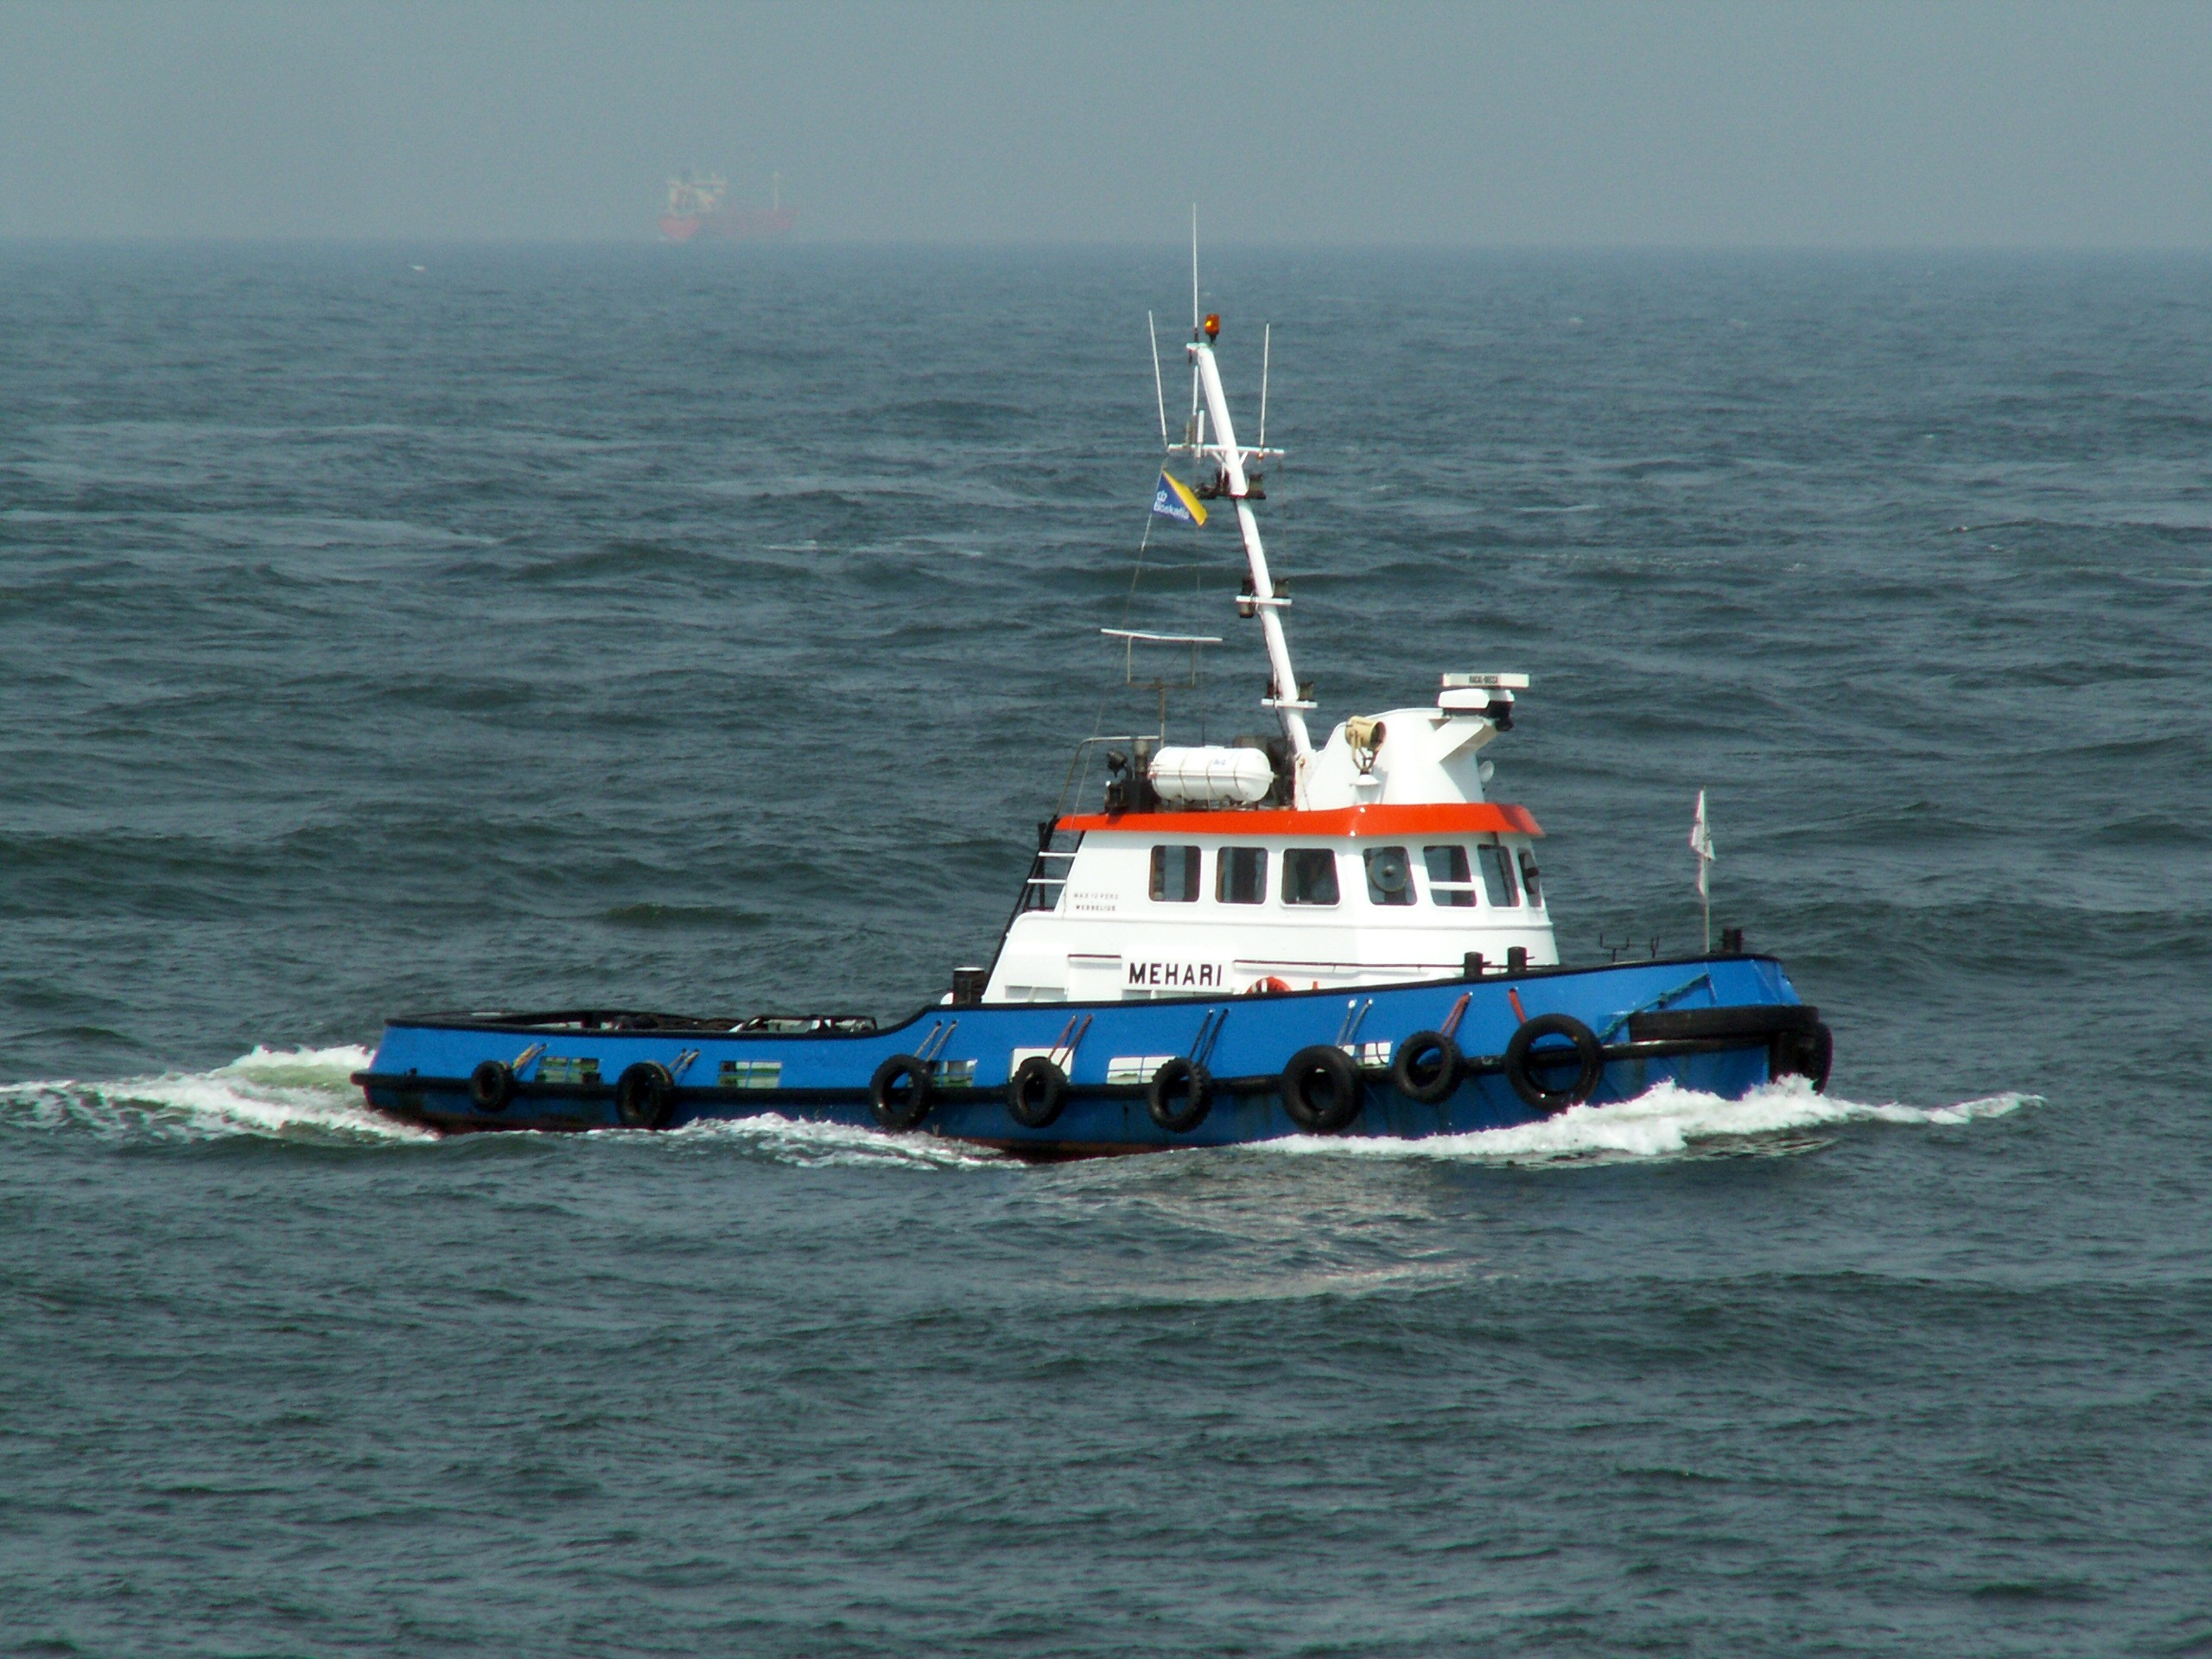 Enlightone: Tugboat The Bird Tugboat D 233 Finition What Is